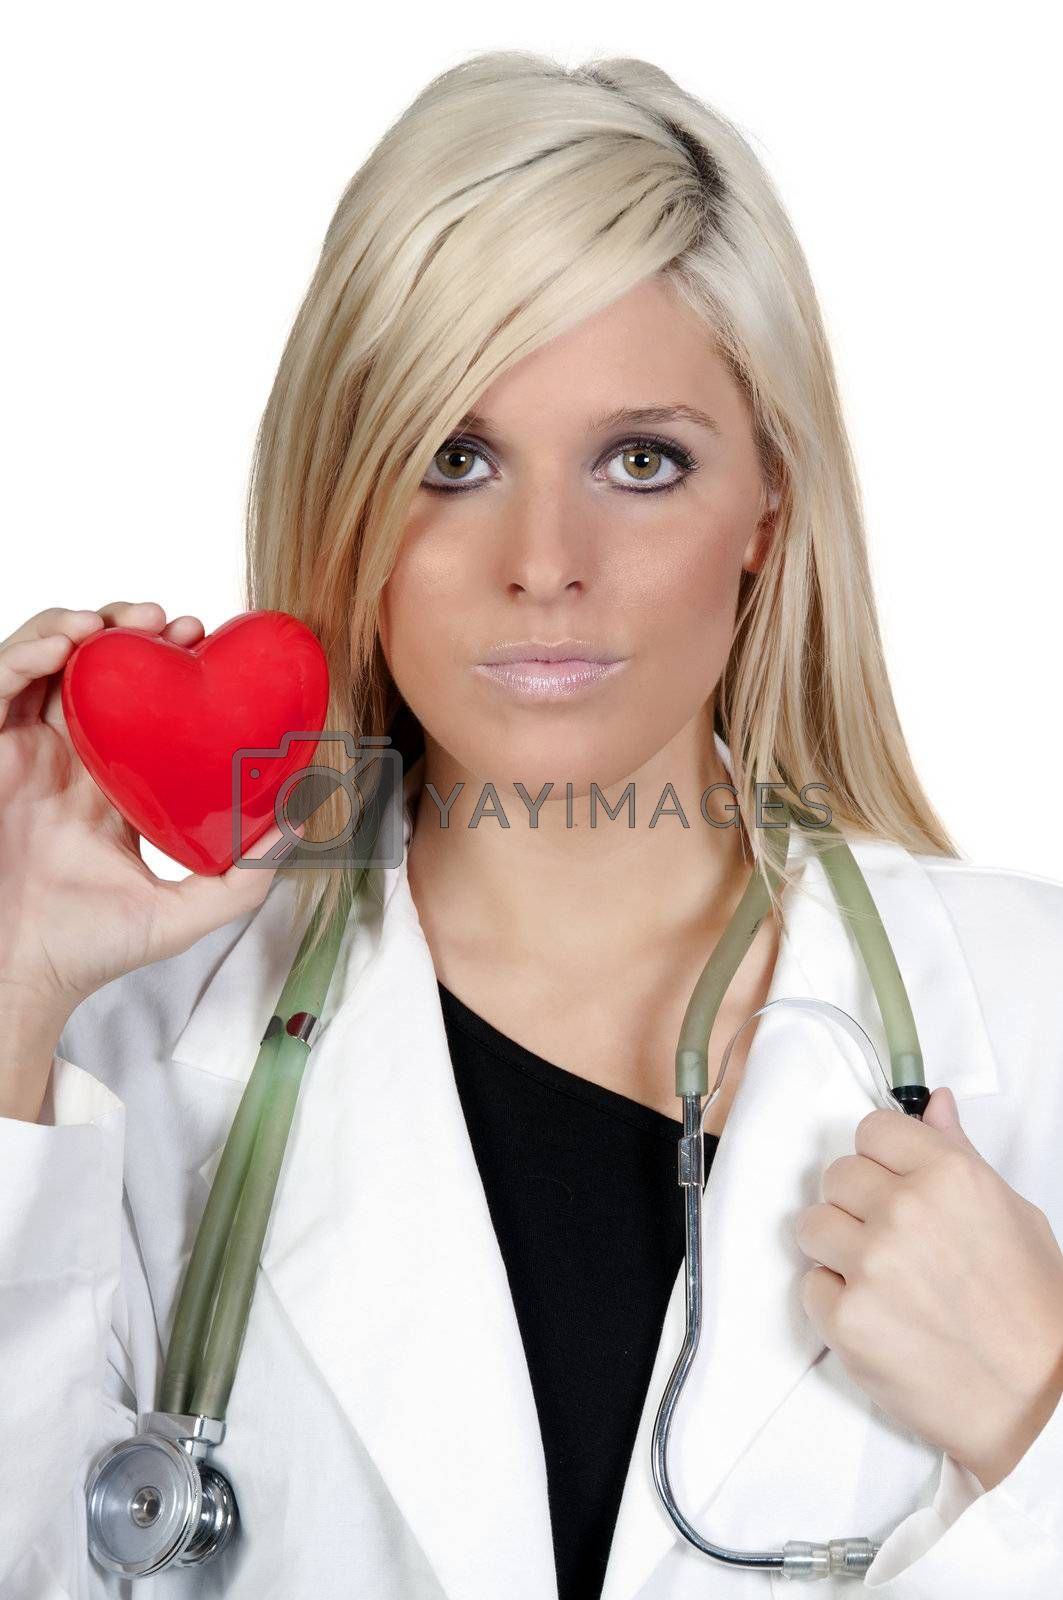 Royalty free image of Female Cardiologist by robeo